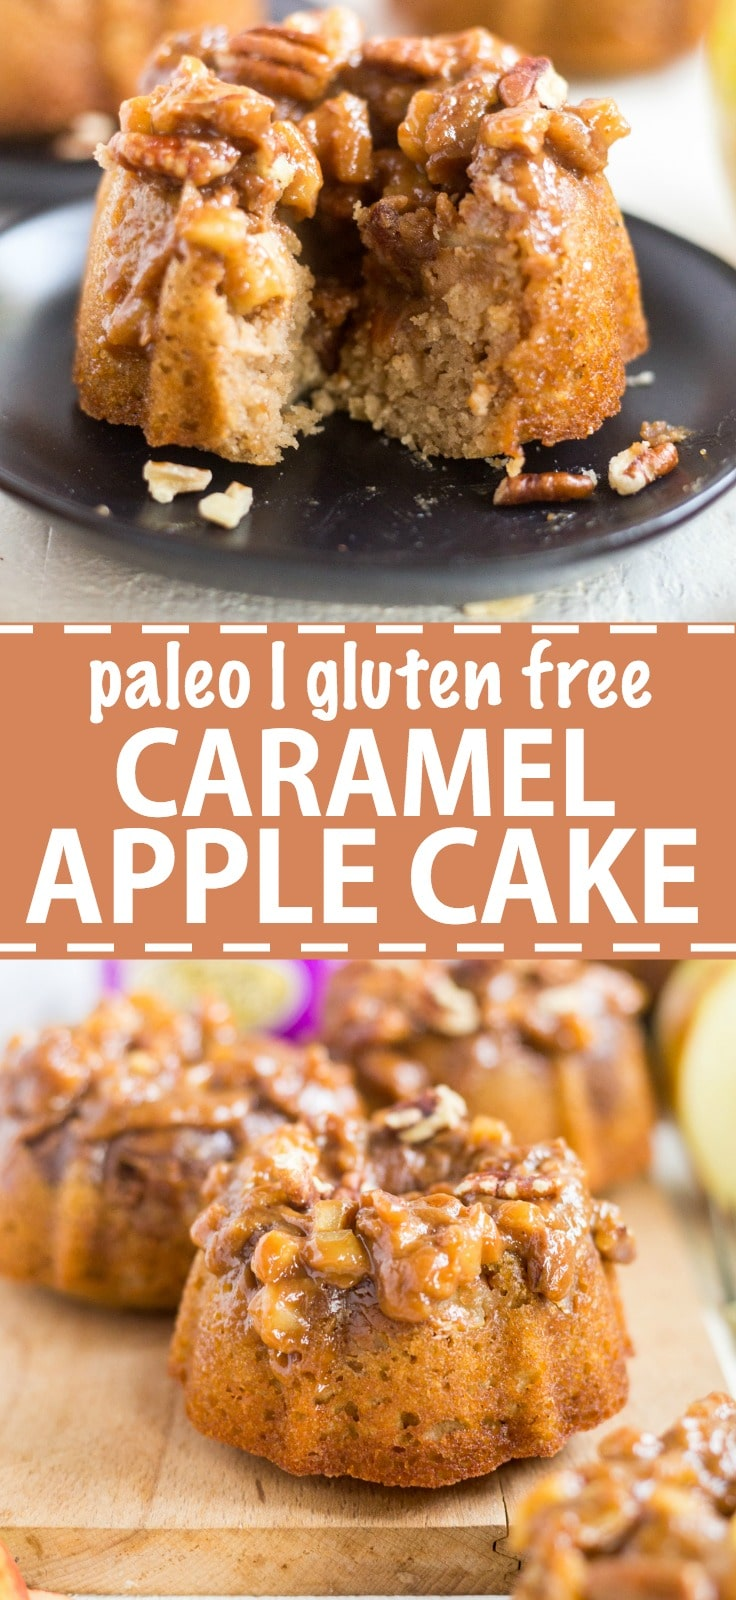 This paleo caramel apple cake is a healthy, gluten free dessert recipe made for Thanksgiving. It's filled with fall flavors and perfect for family and friends that want to stay healthy during the holiday season.